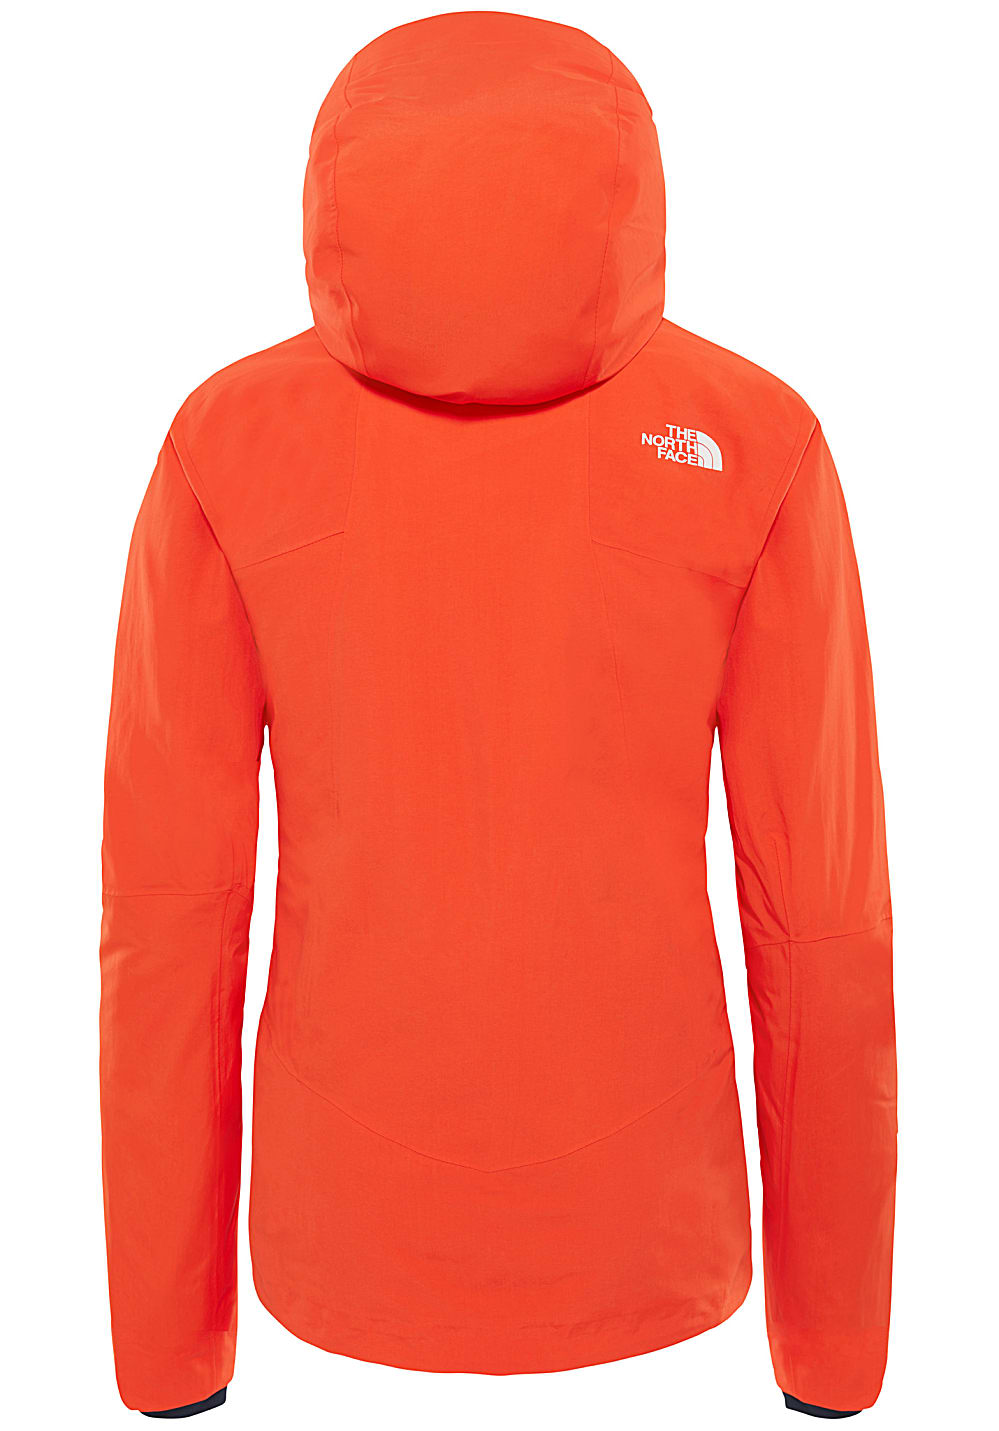 02df25006 THE NORTH FACE Lostrail - Ski Jacket for Women - Orange